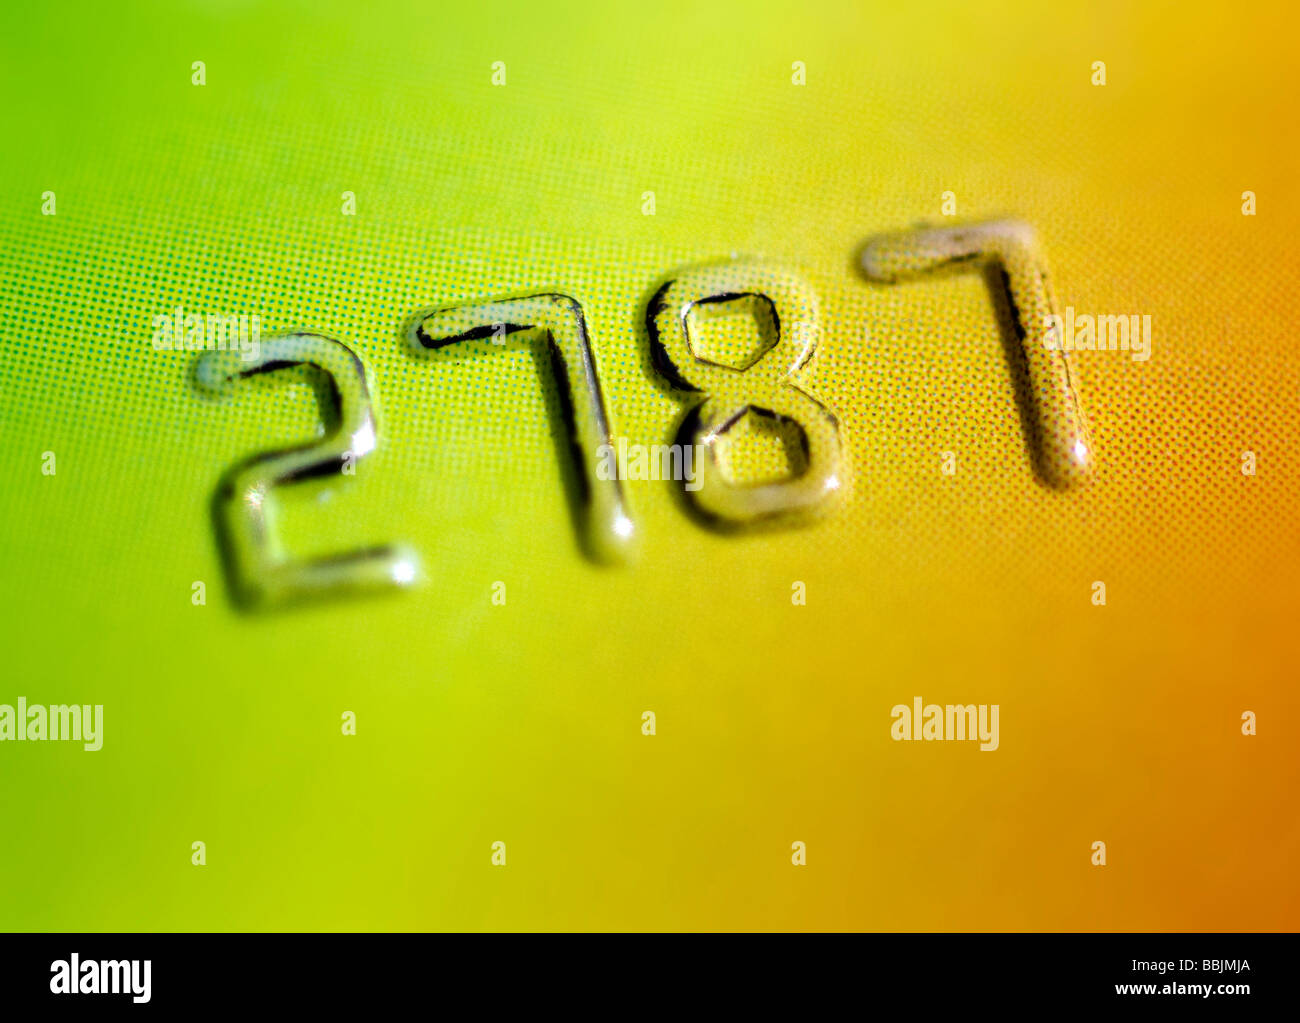 Credit card numbers - Stock Image